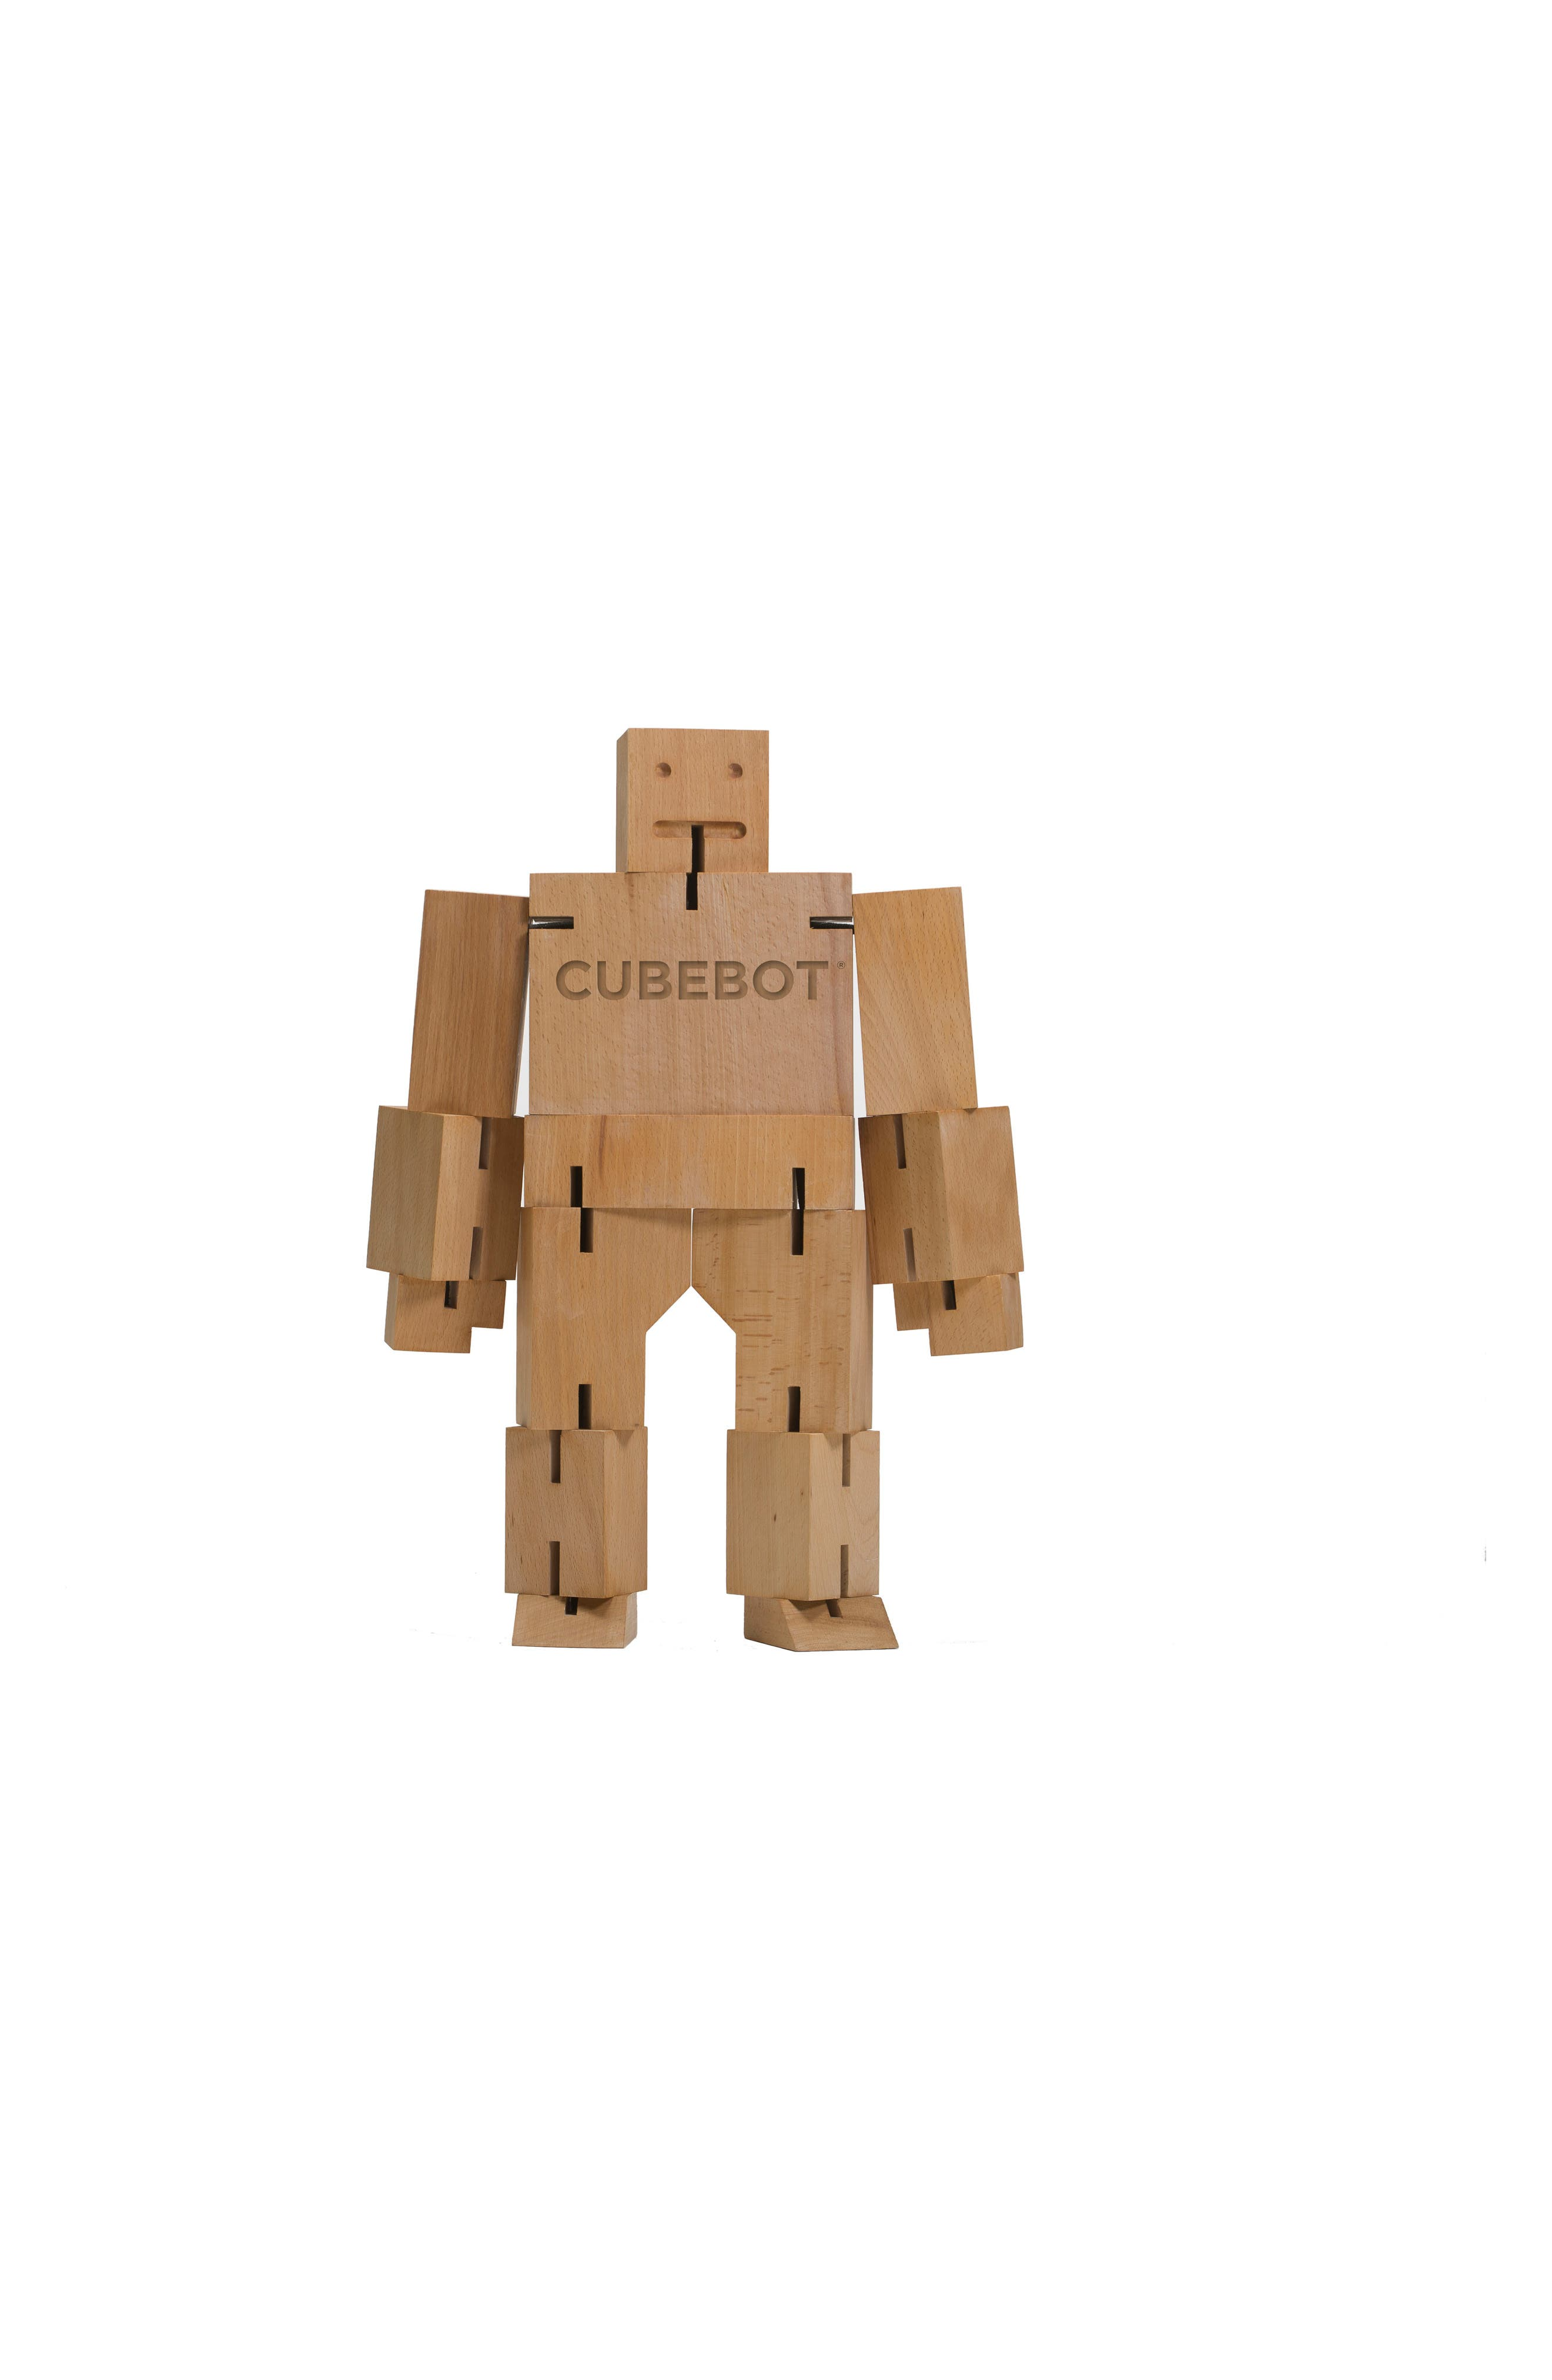 Cubebot Small Wooden Robot Toy,                         Main,                         color, 200